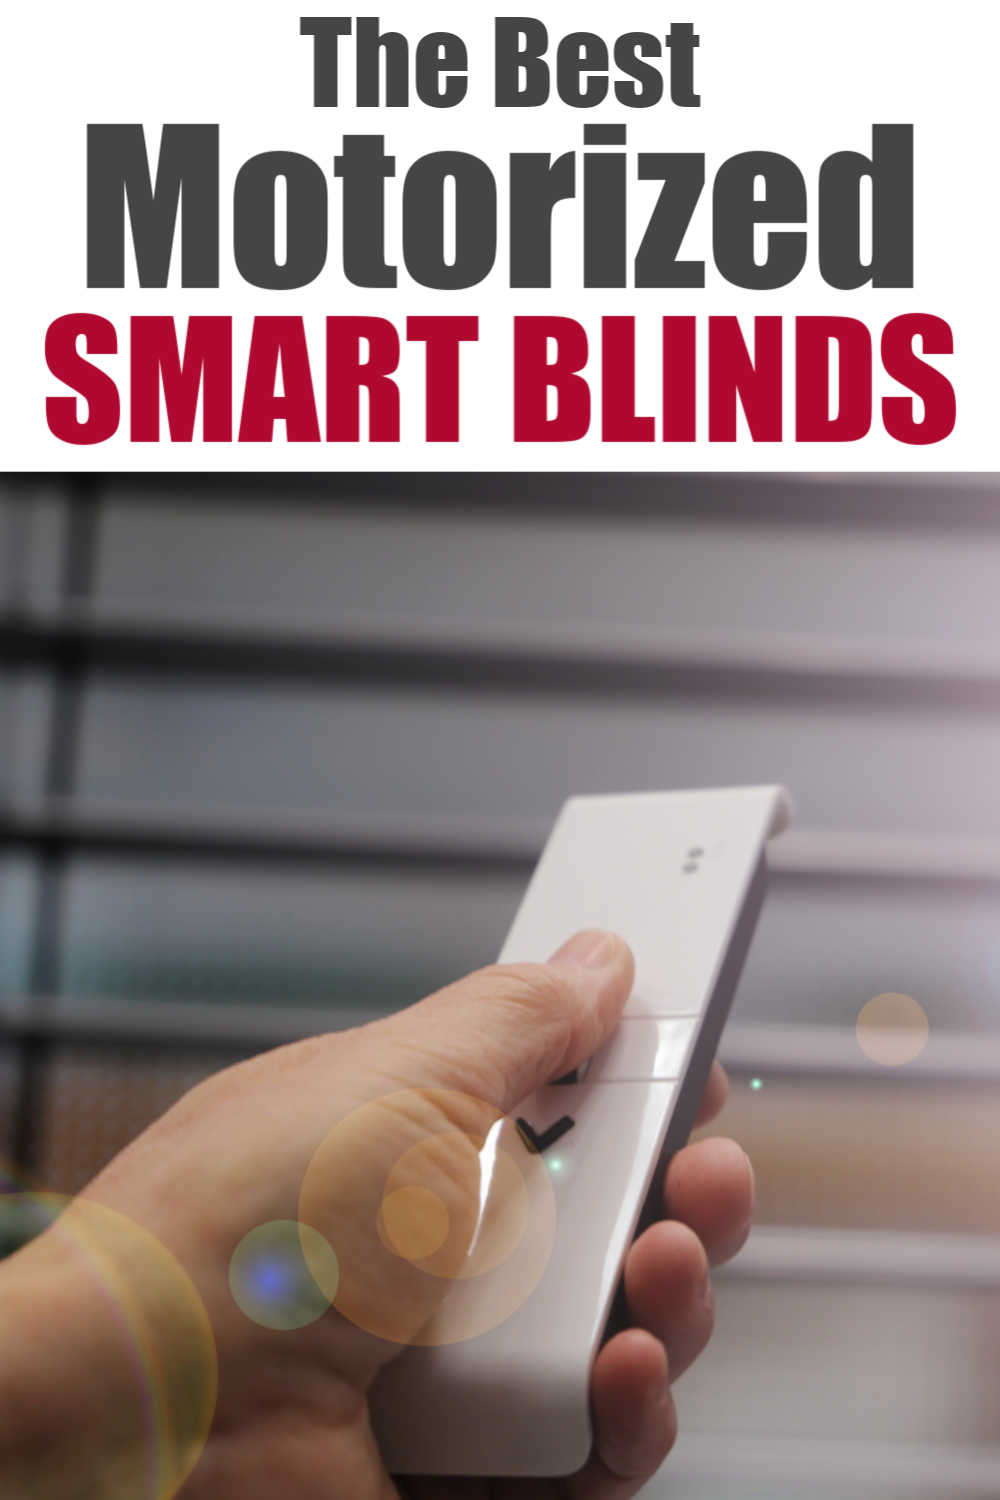 Best Smart Blinds for Your Home in 2020